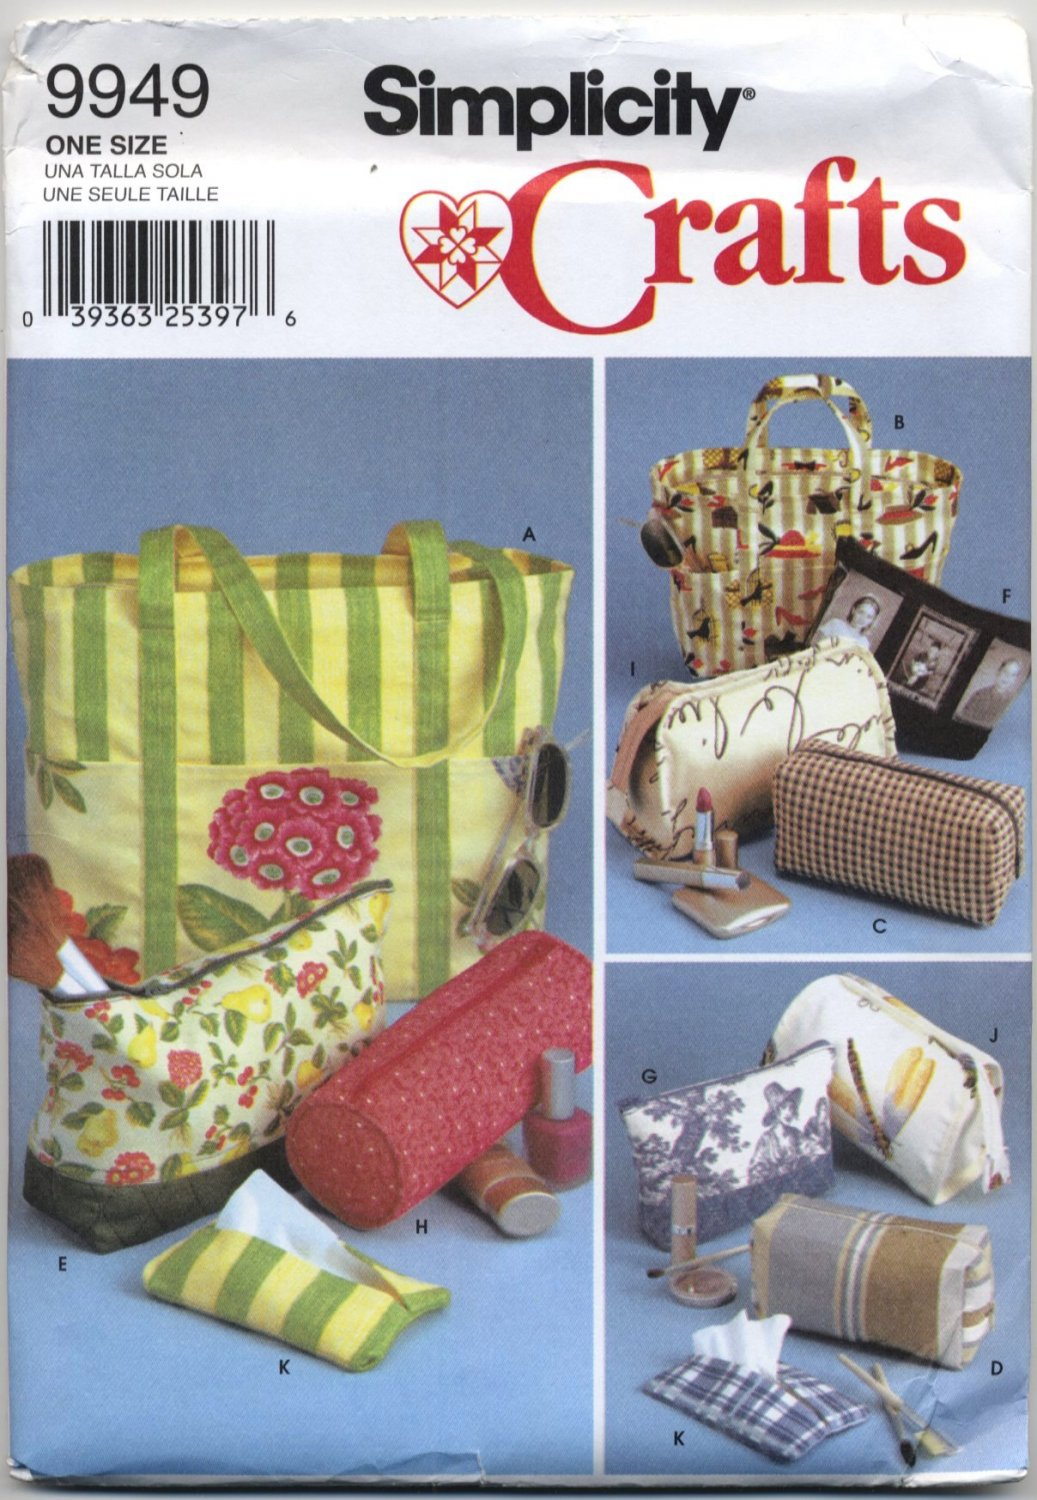 Simplicity Crafts 9949 Totes & Zippered Accessory Bags - Sewing Pattern - Tissue Cover Too